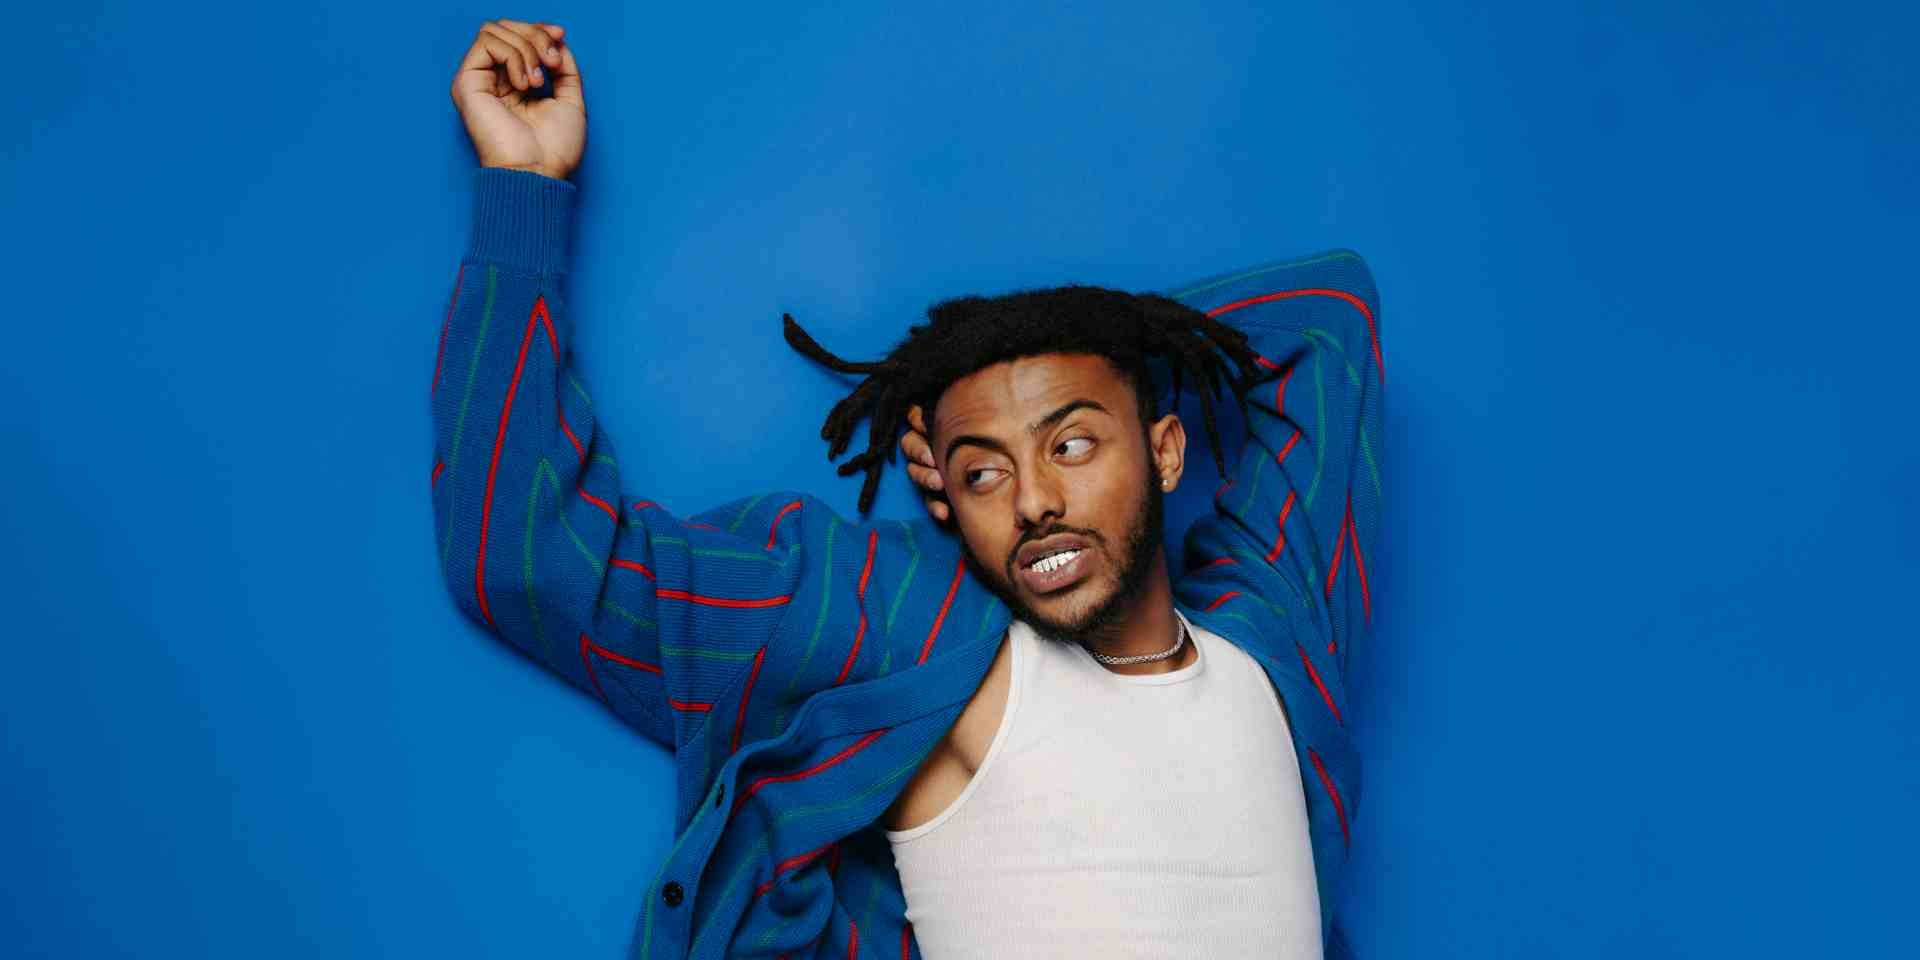 """I just want to make music that I love – not for attention"": An interview with Aminé"